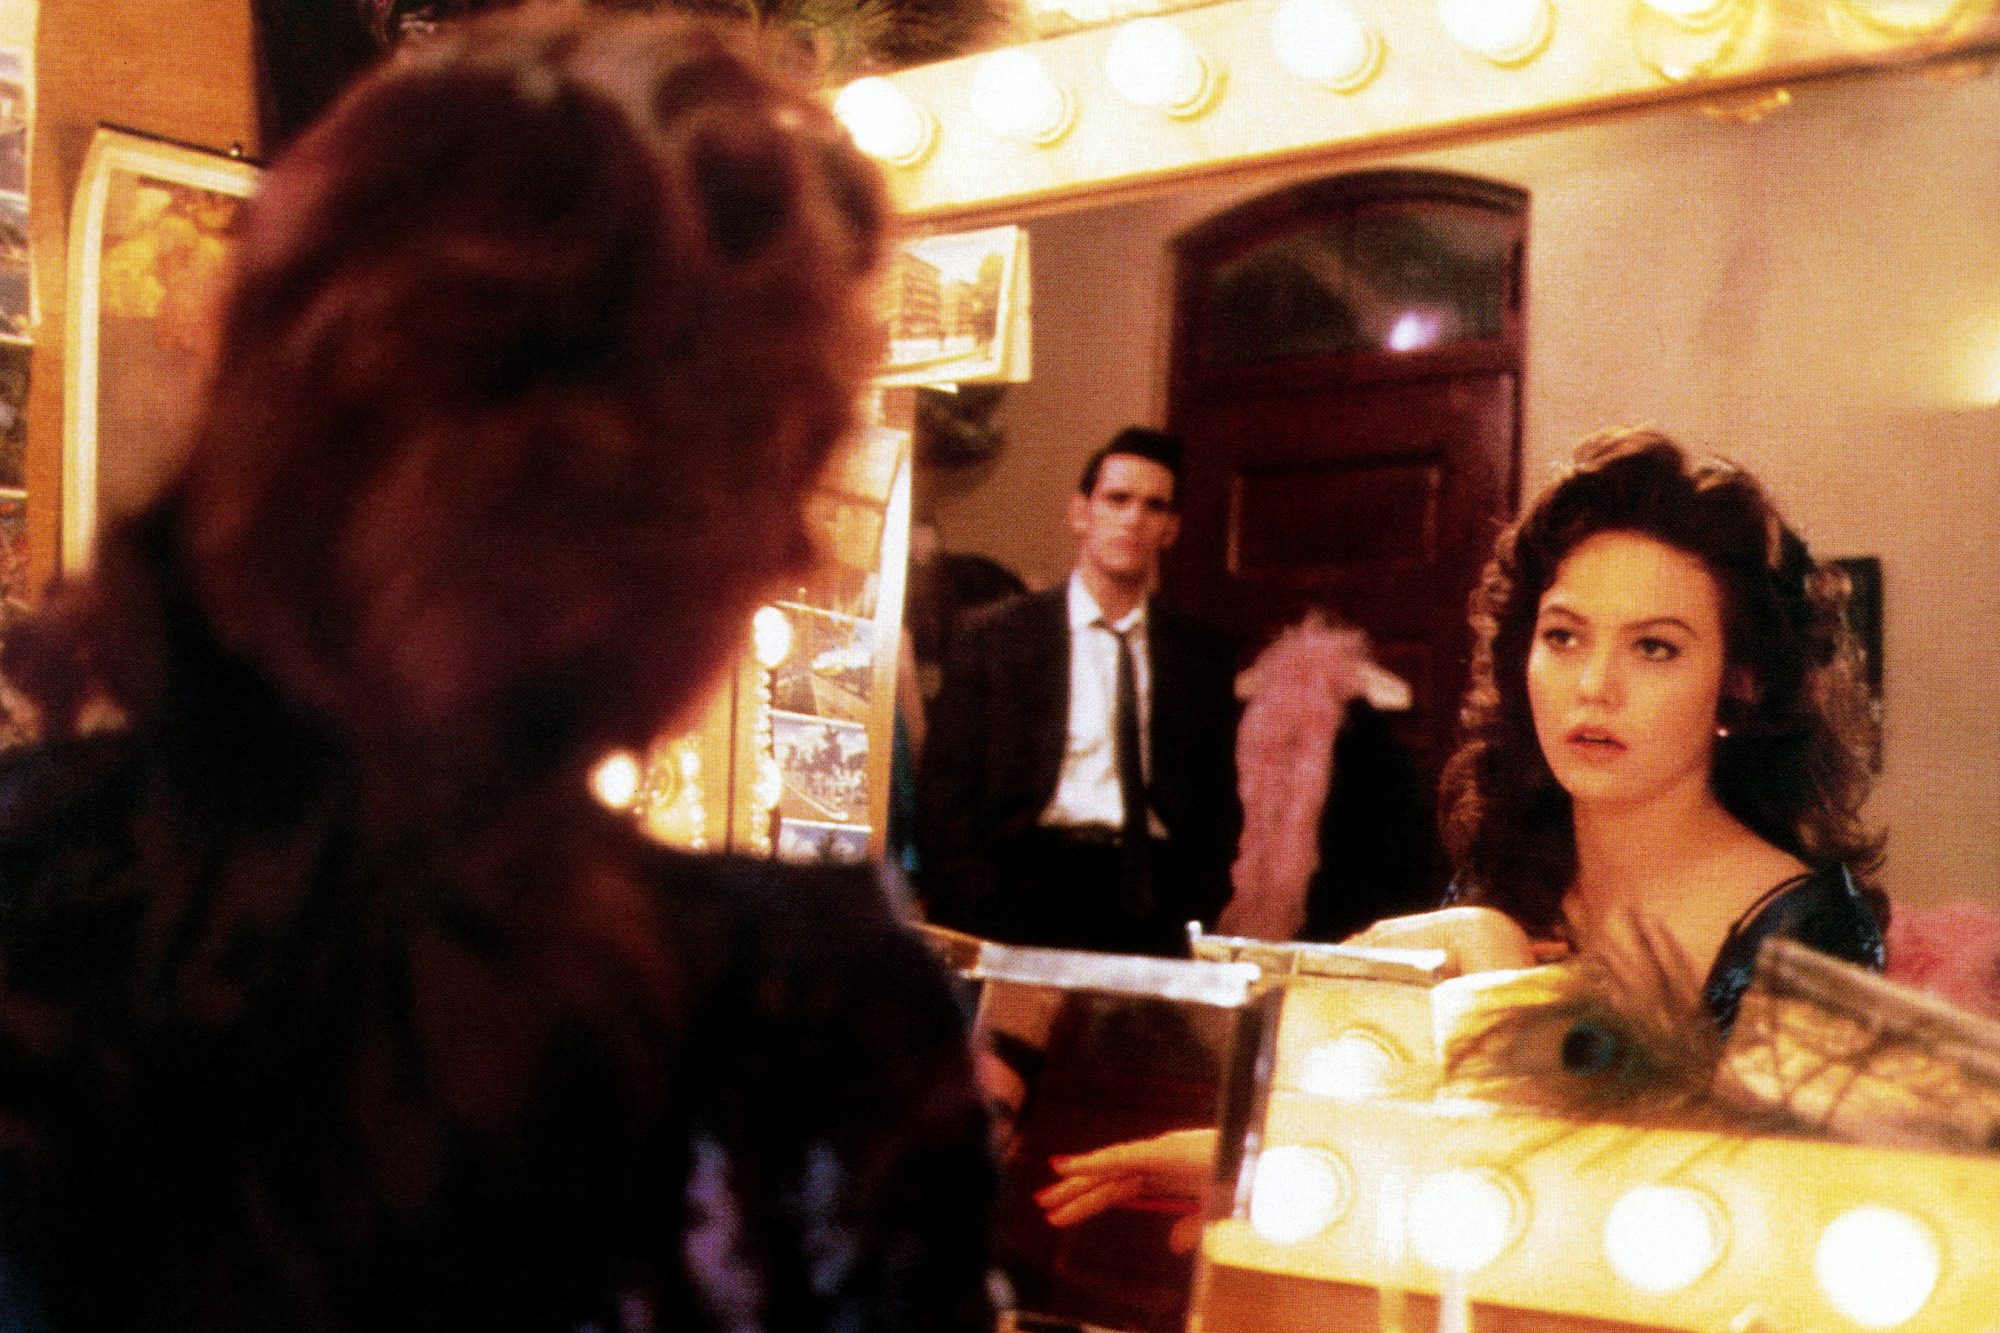 THE BIG TOWN, in mirror from left: Matt Dillon, Diane Lane, 1987, © Columbia/courtesy Everett Collec